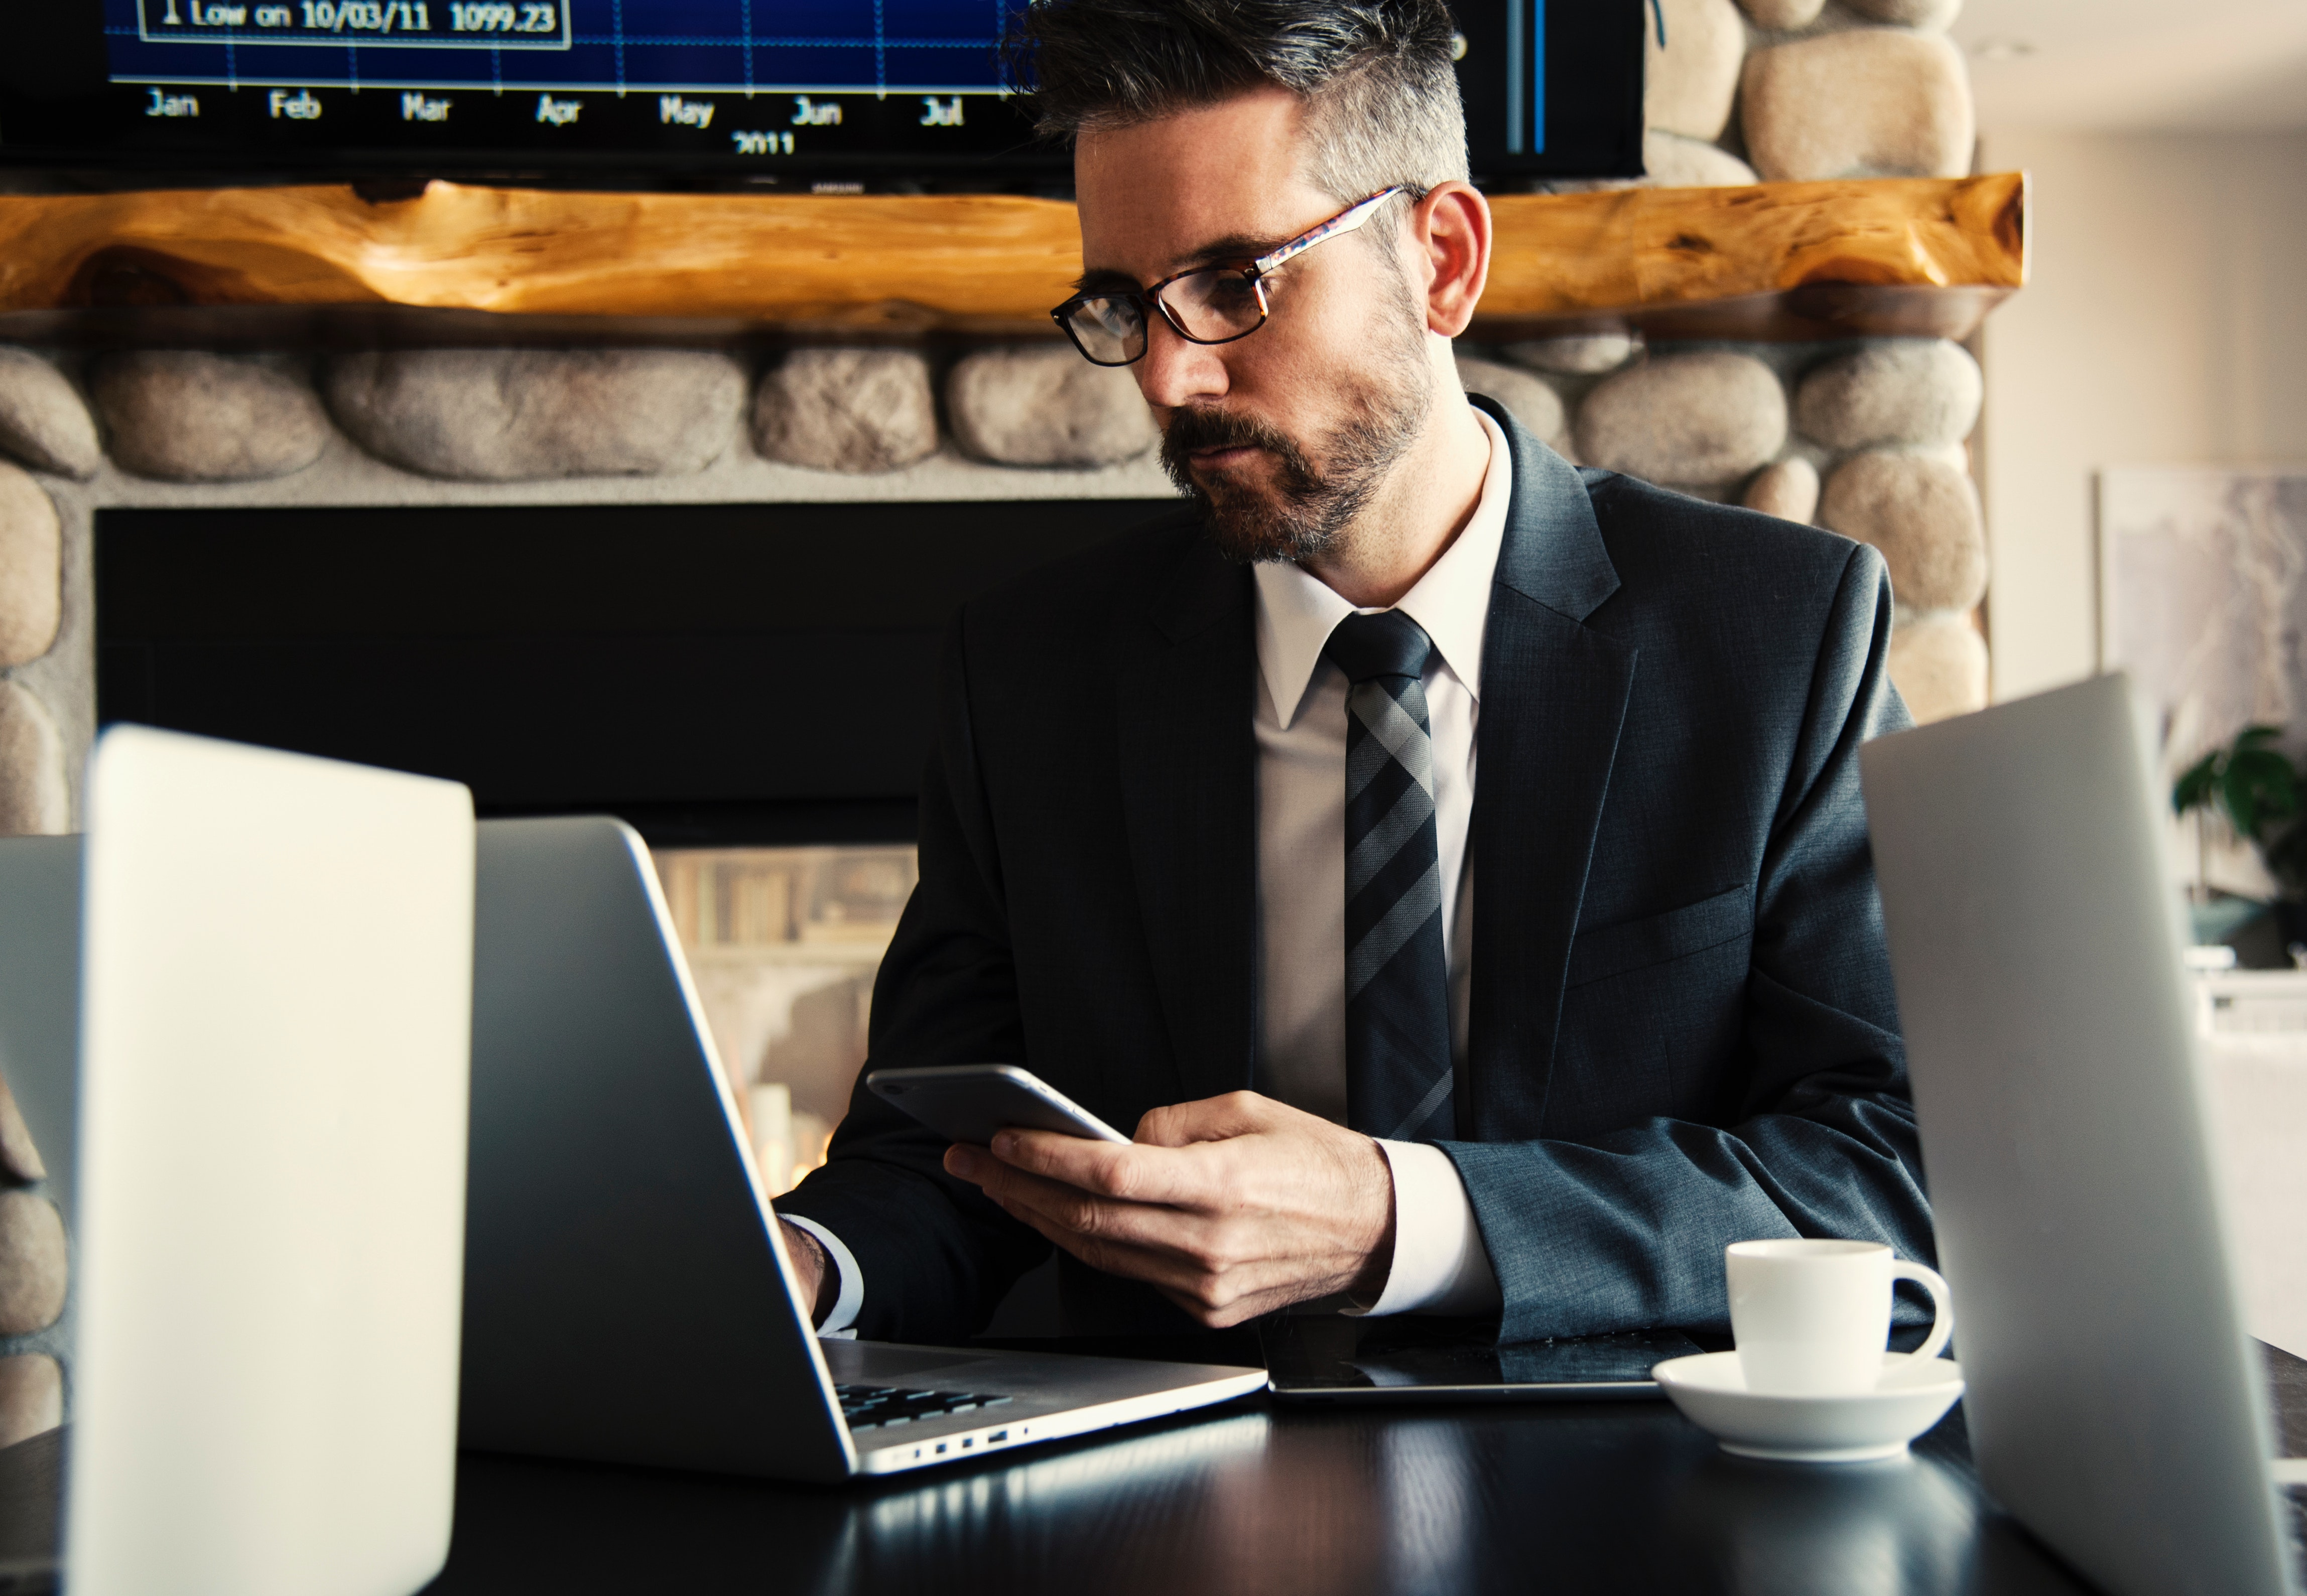 Broker holding a smartphone and looking at laptop